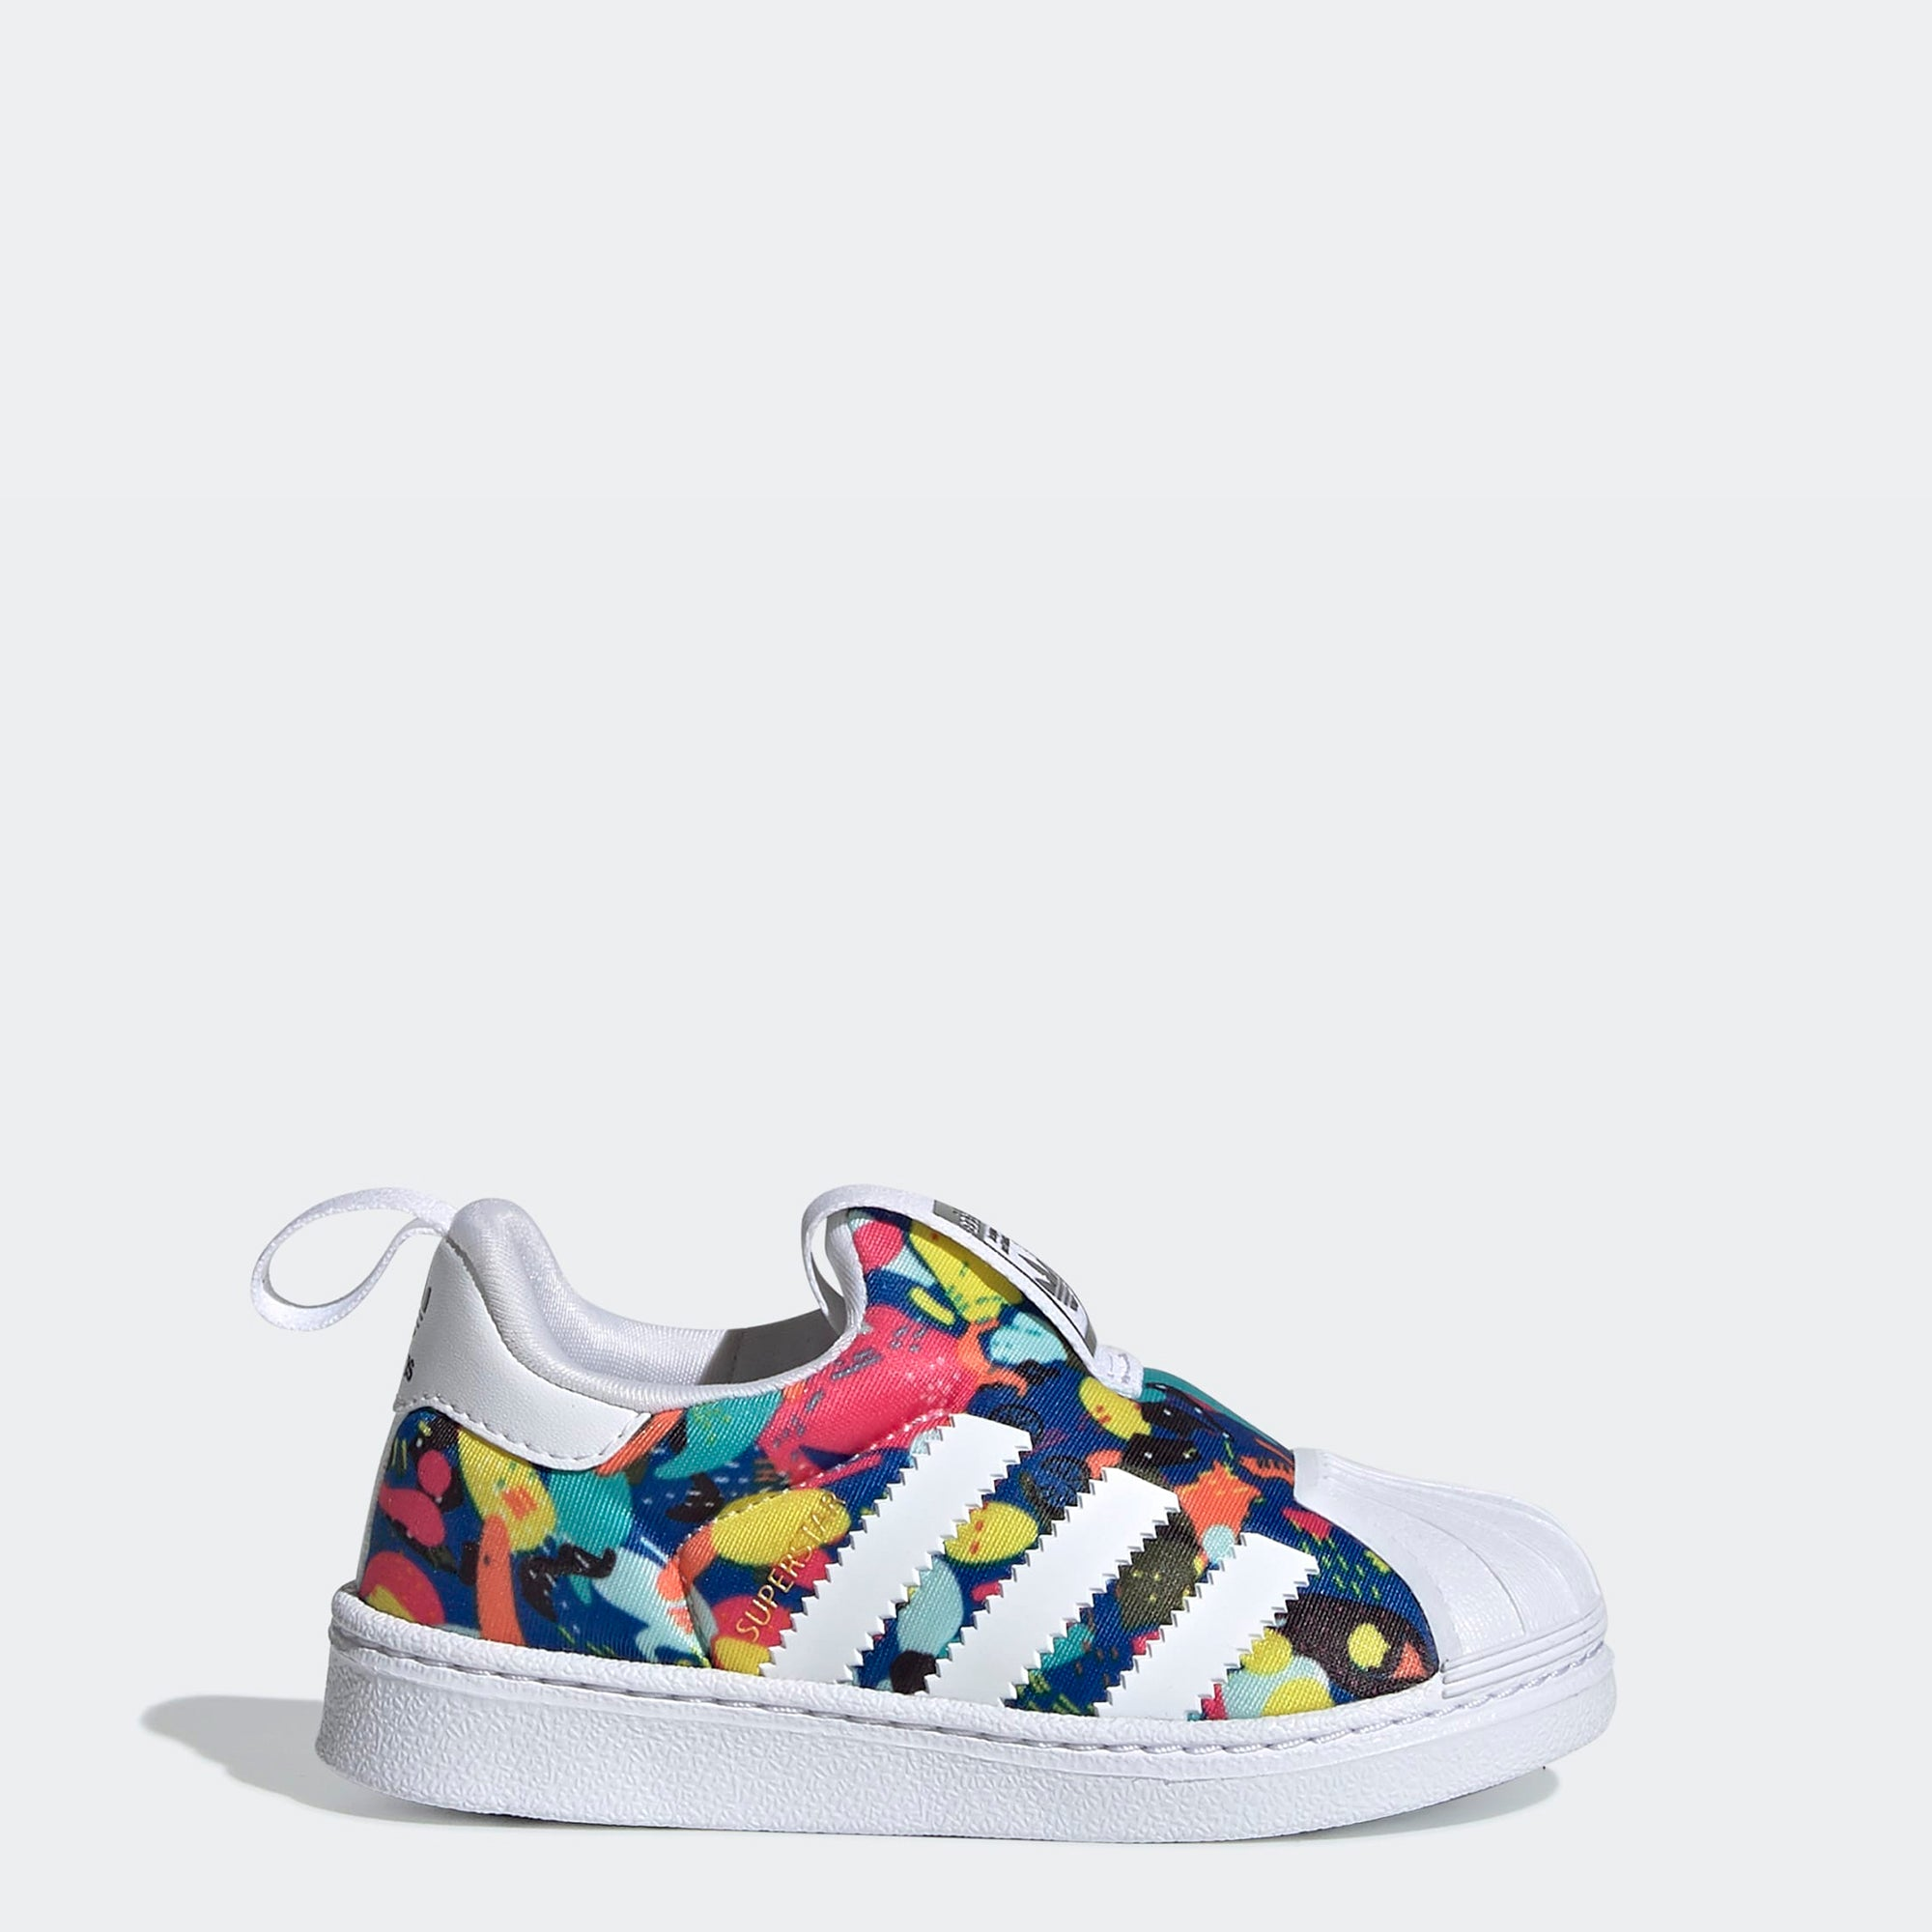 adidas Superstar 360 Slip On Shoes EE6275 | Chicago City Sports